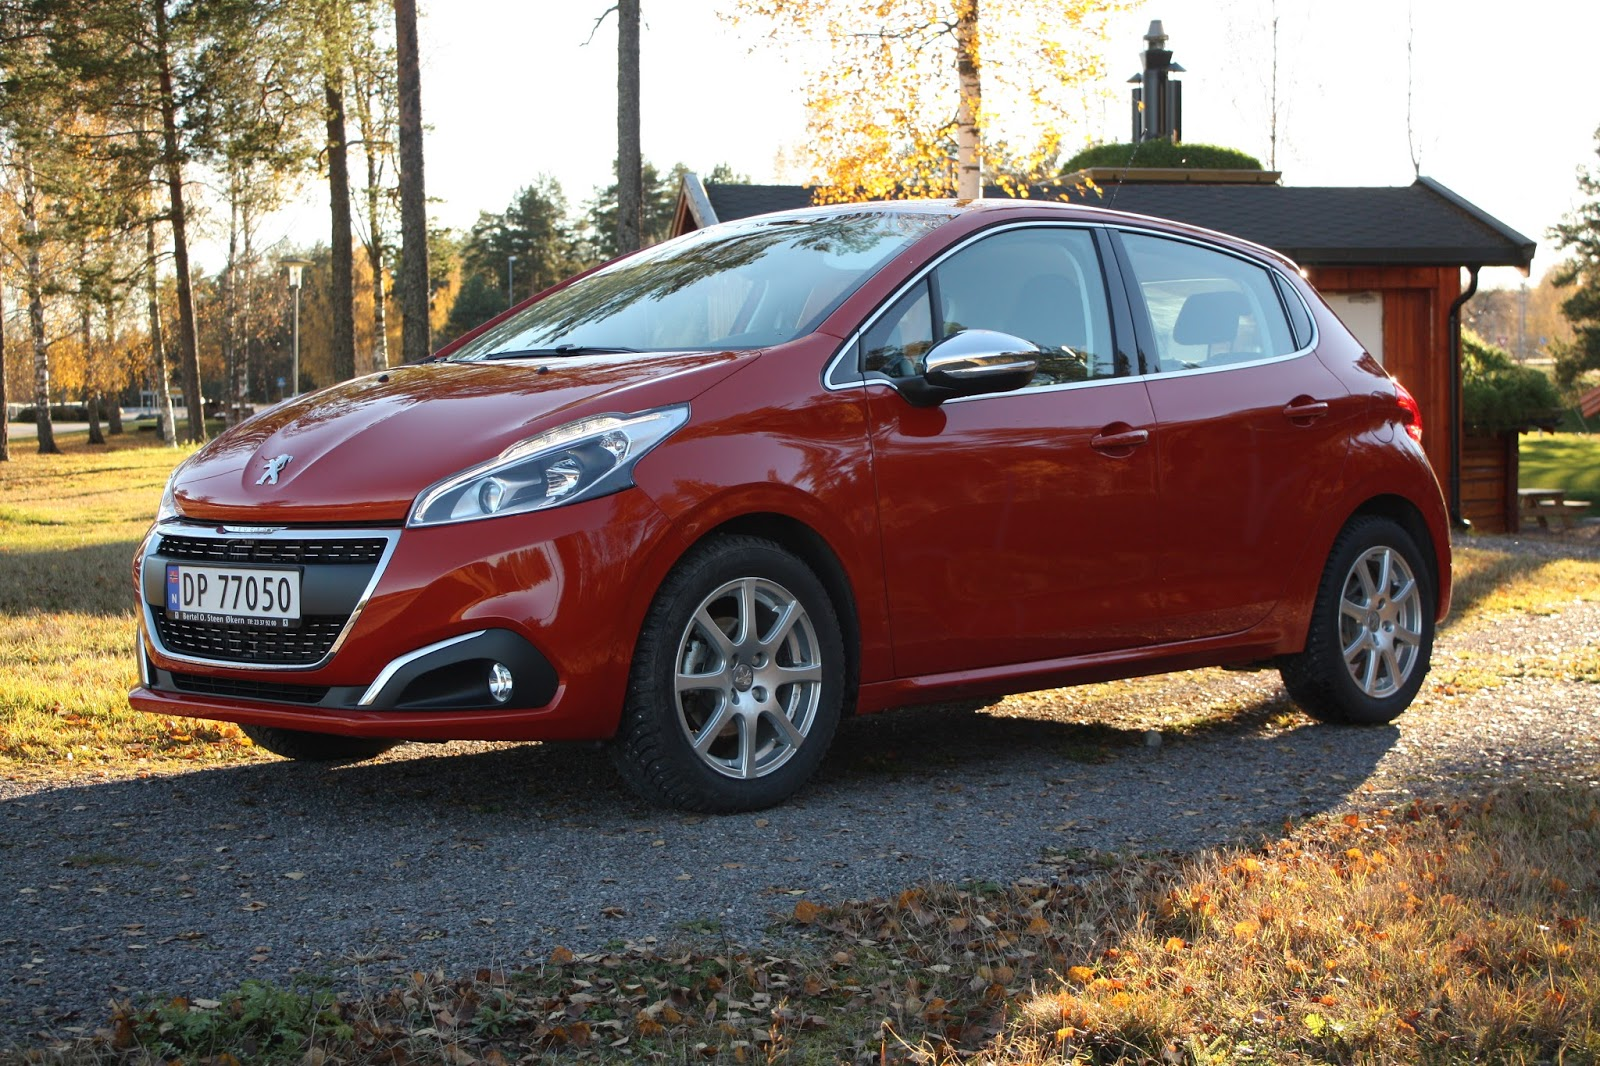 test peugeot 208 allure 1 2 puretech 110 hk automat bil og motorbloggen. Black Bedroom Furniture Sets. Home Design Ideas